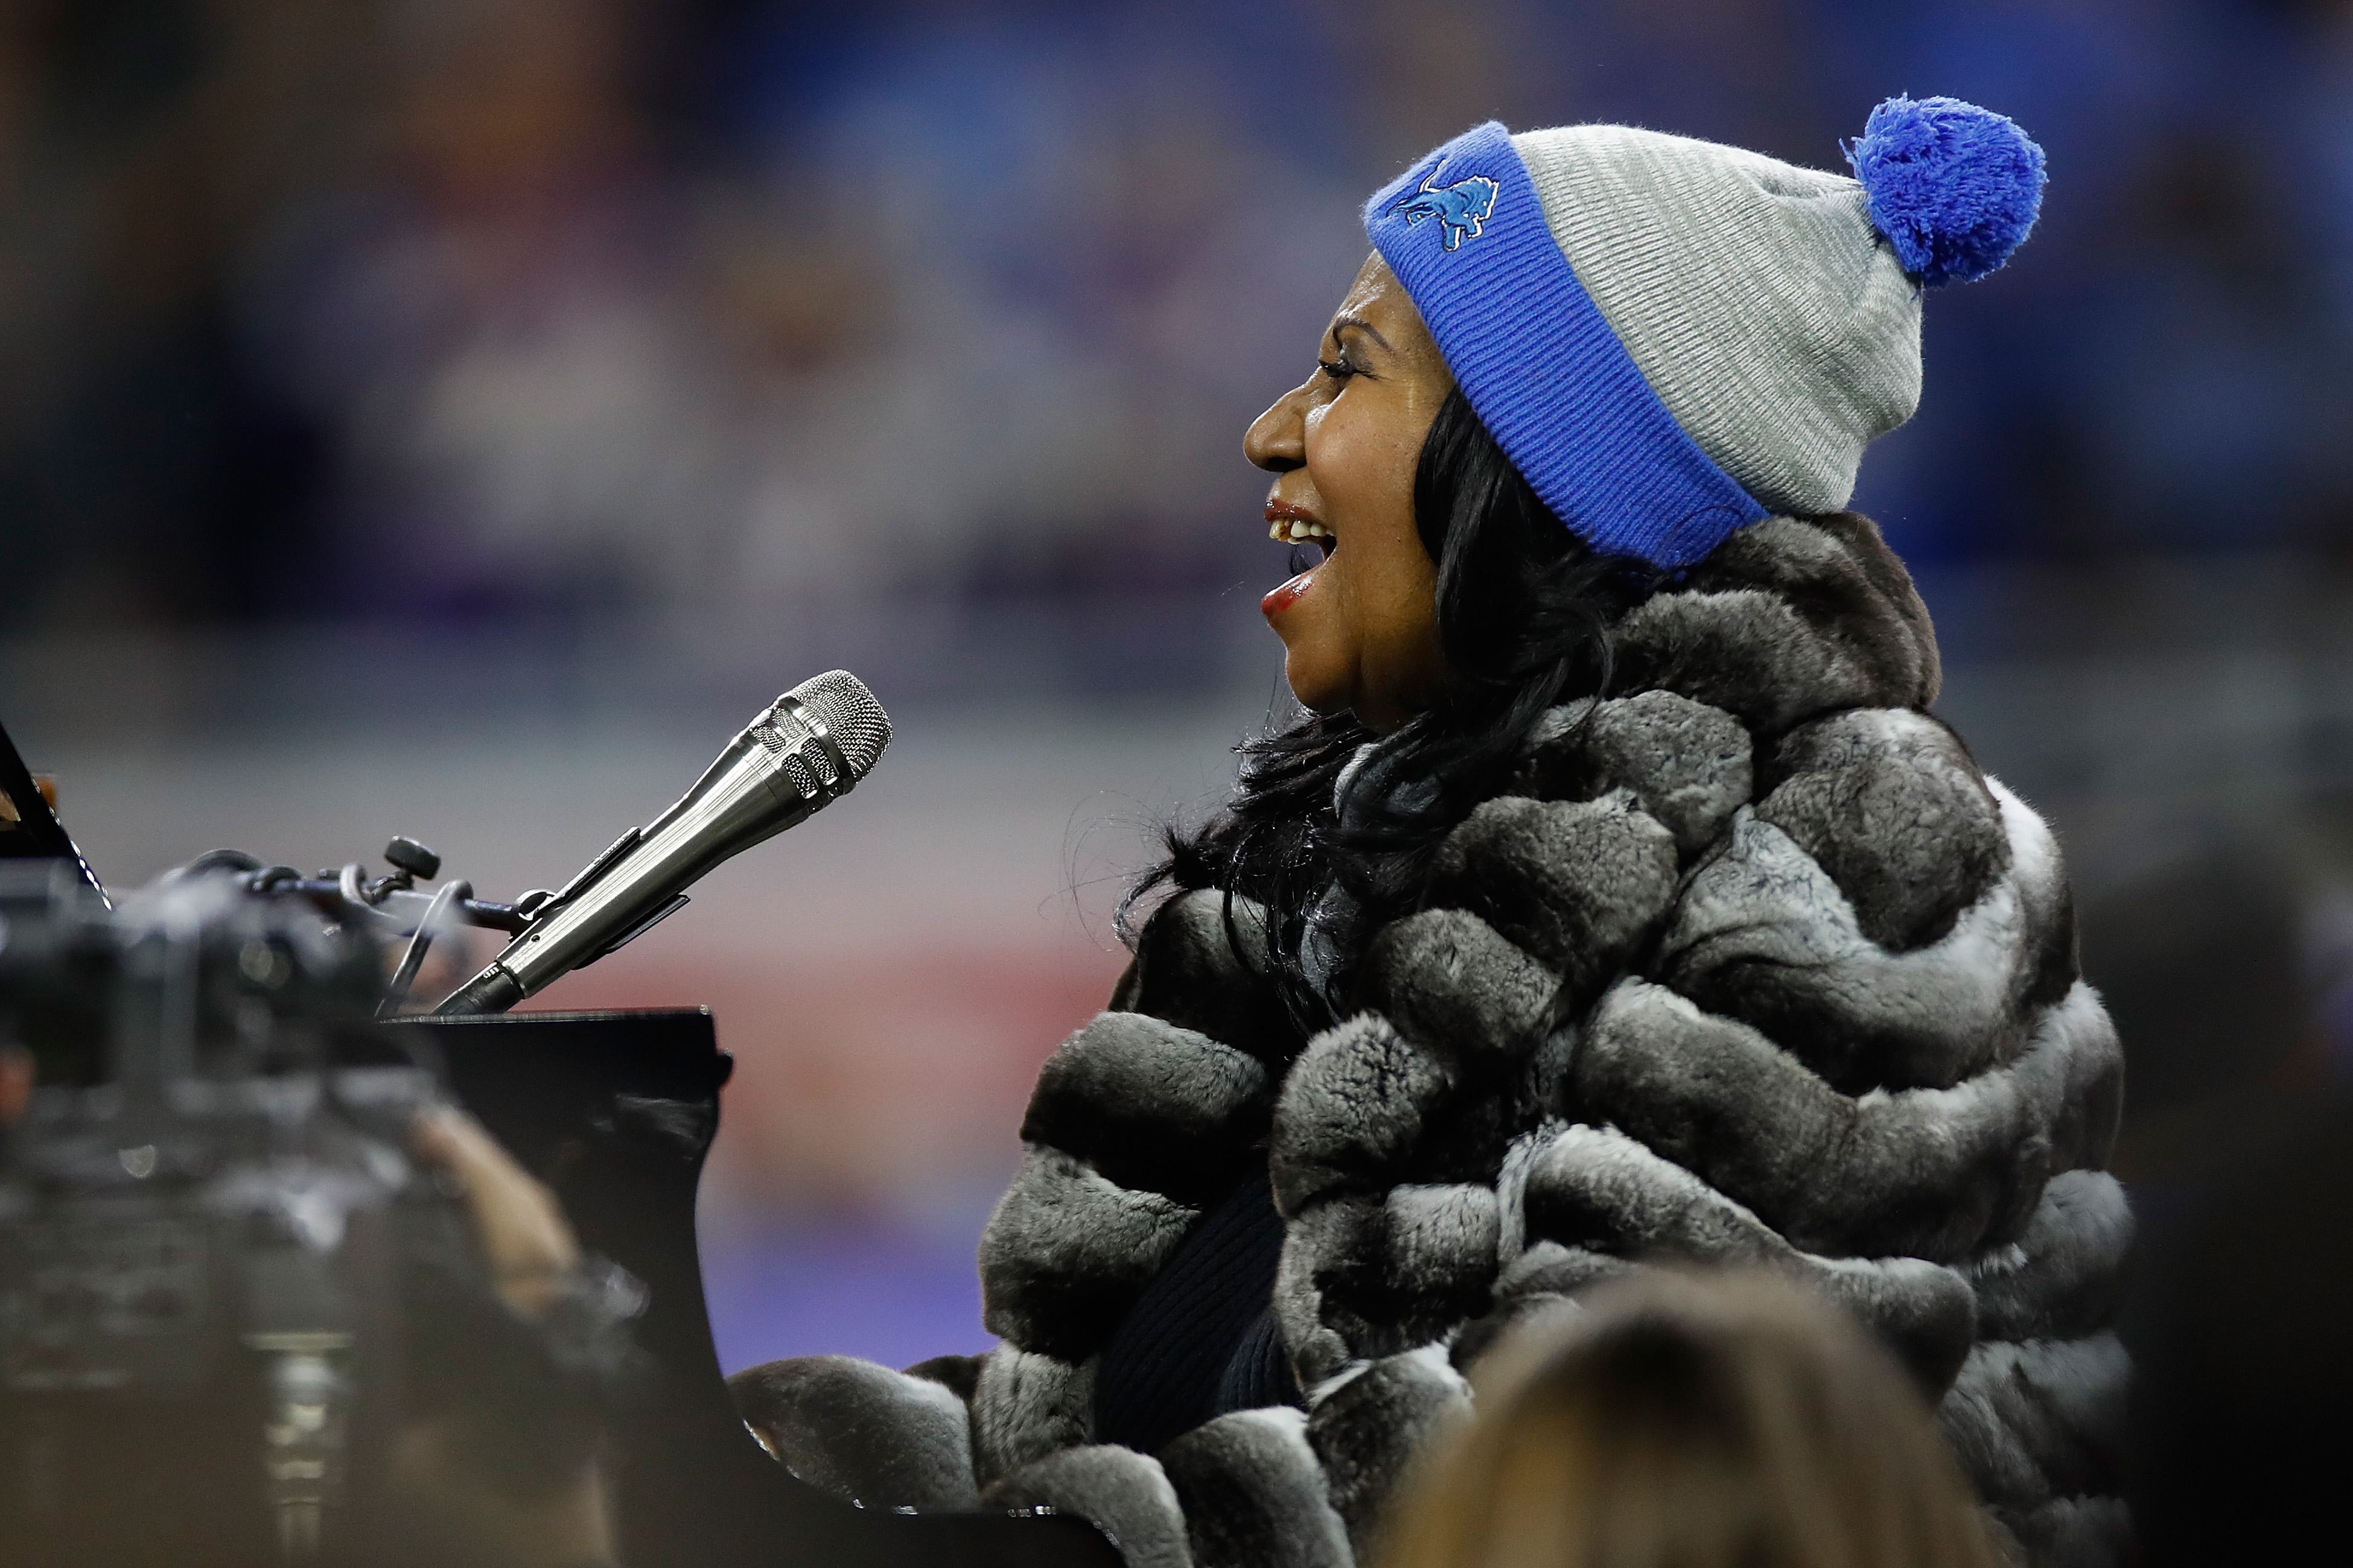 Detroit native Aretha Franklin sings the National Anthem prior to the start of the Detroit Lions and the Minnesota Vikings game at Ford Field on Nov. 24, 2016 in Detroit, Michigan.